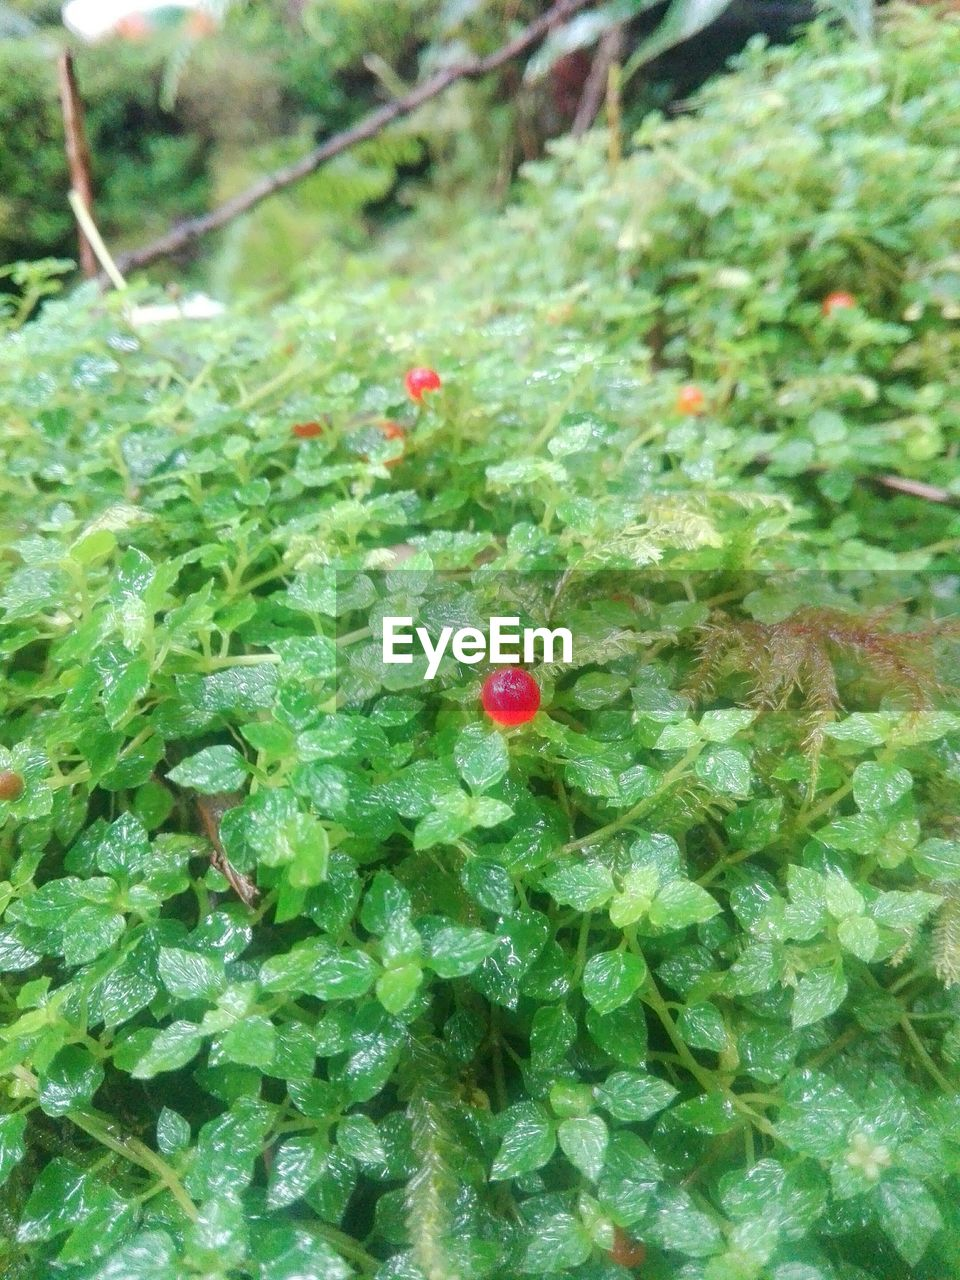 green color, growth, no people, red, plant, nature, high angle view, outdoors, day, beauty in nature, close-up, freshness, fragility, animal themes